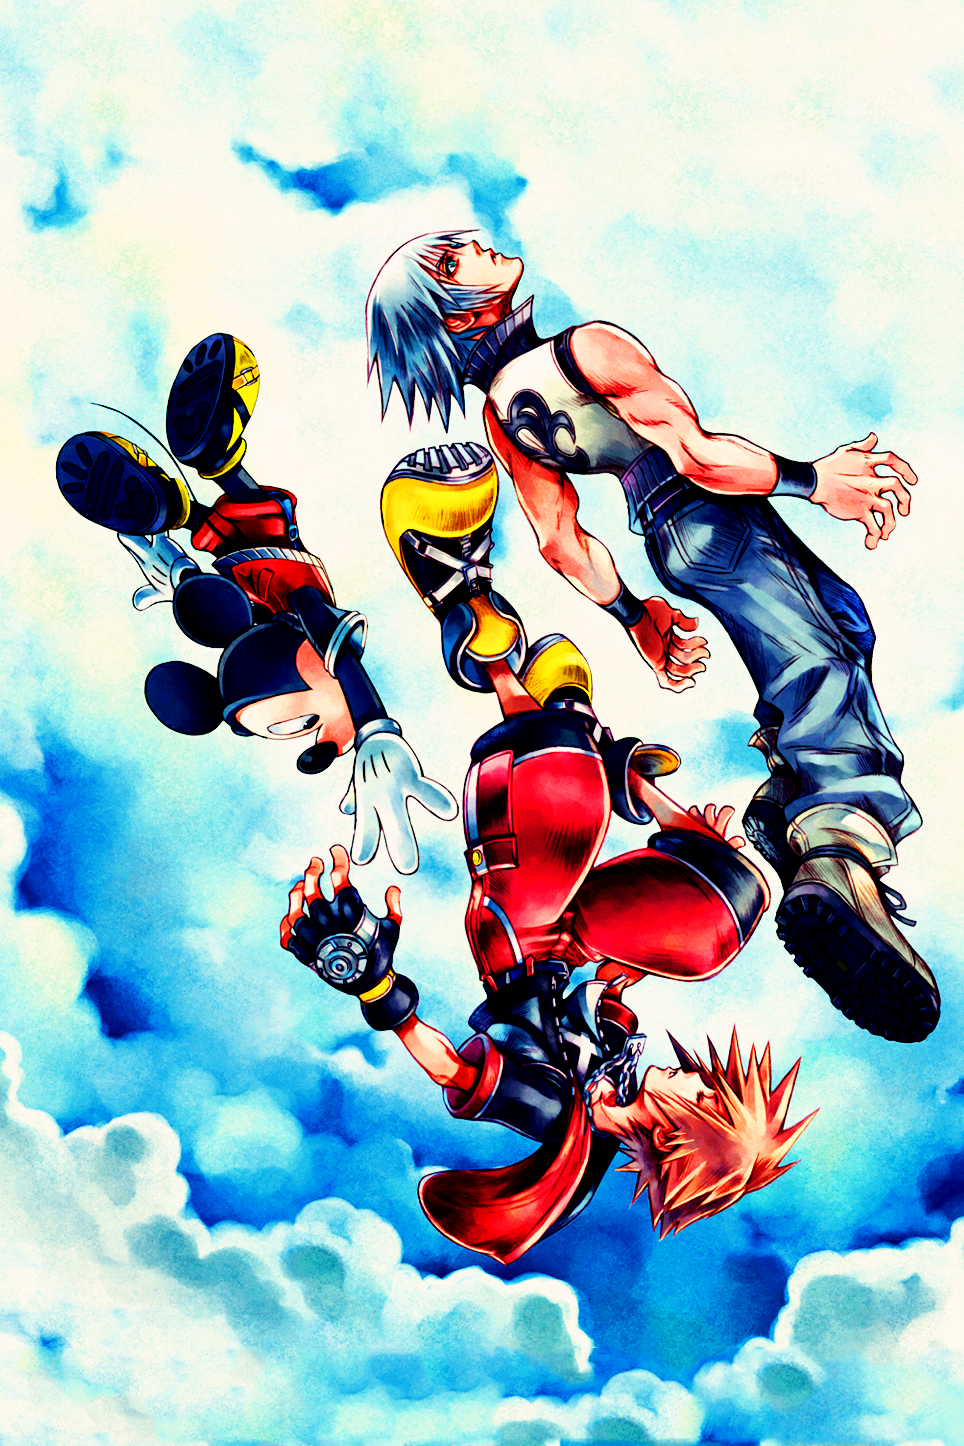 Kingdom hearts iphone wallpaper tumblr - Iphone Wallpapers